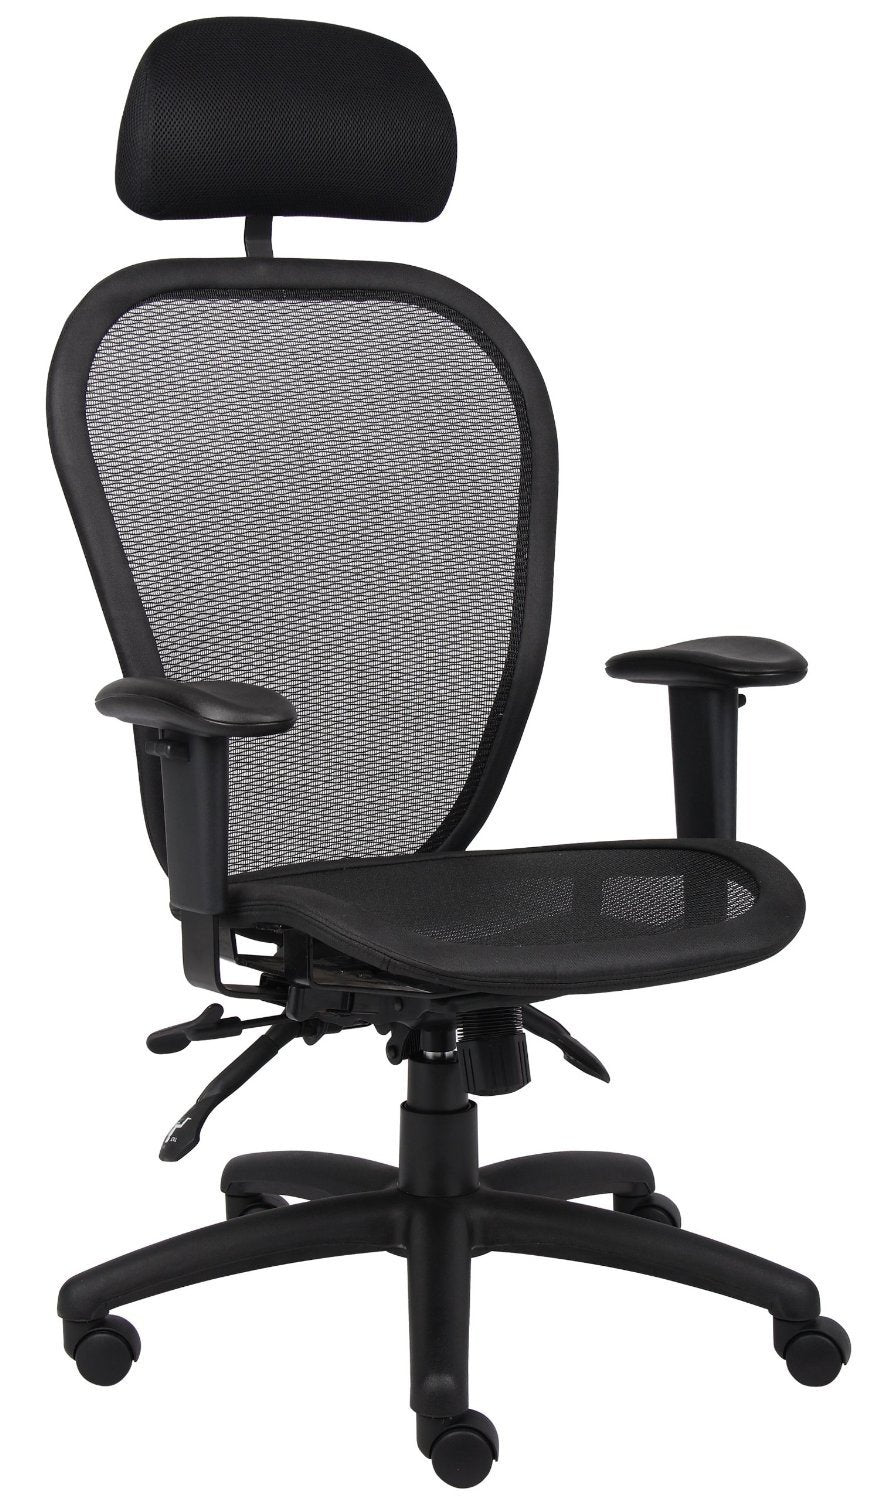 Boss Office Products B6018-HR Boss Multi Function Mesh Chair W/ Headrest from Boss Office Products